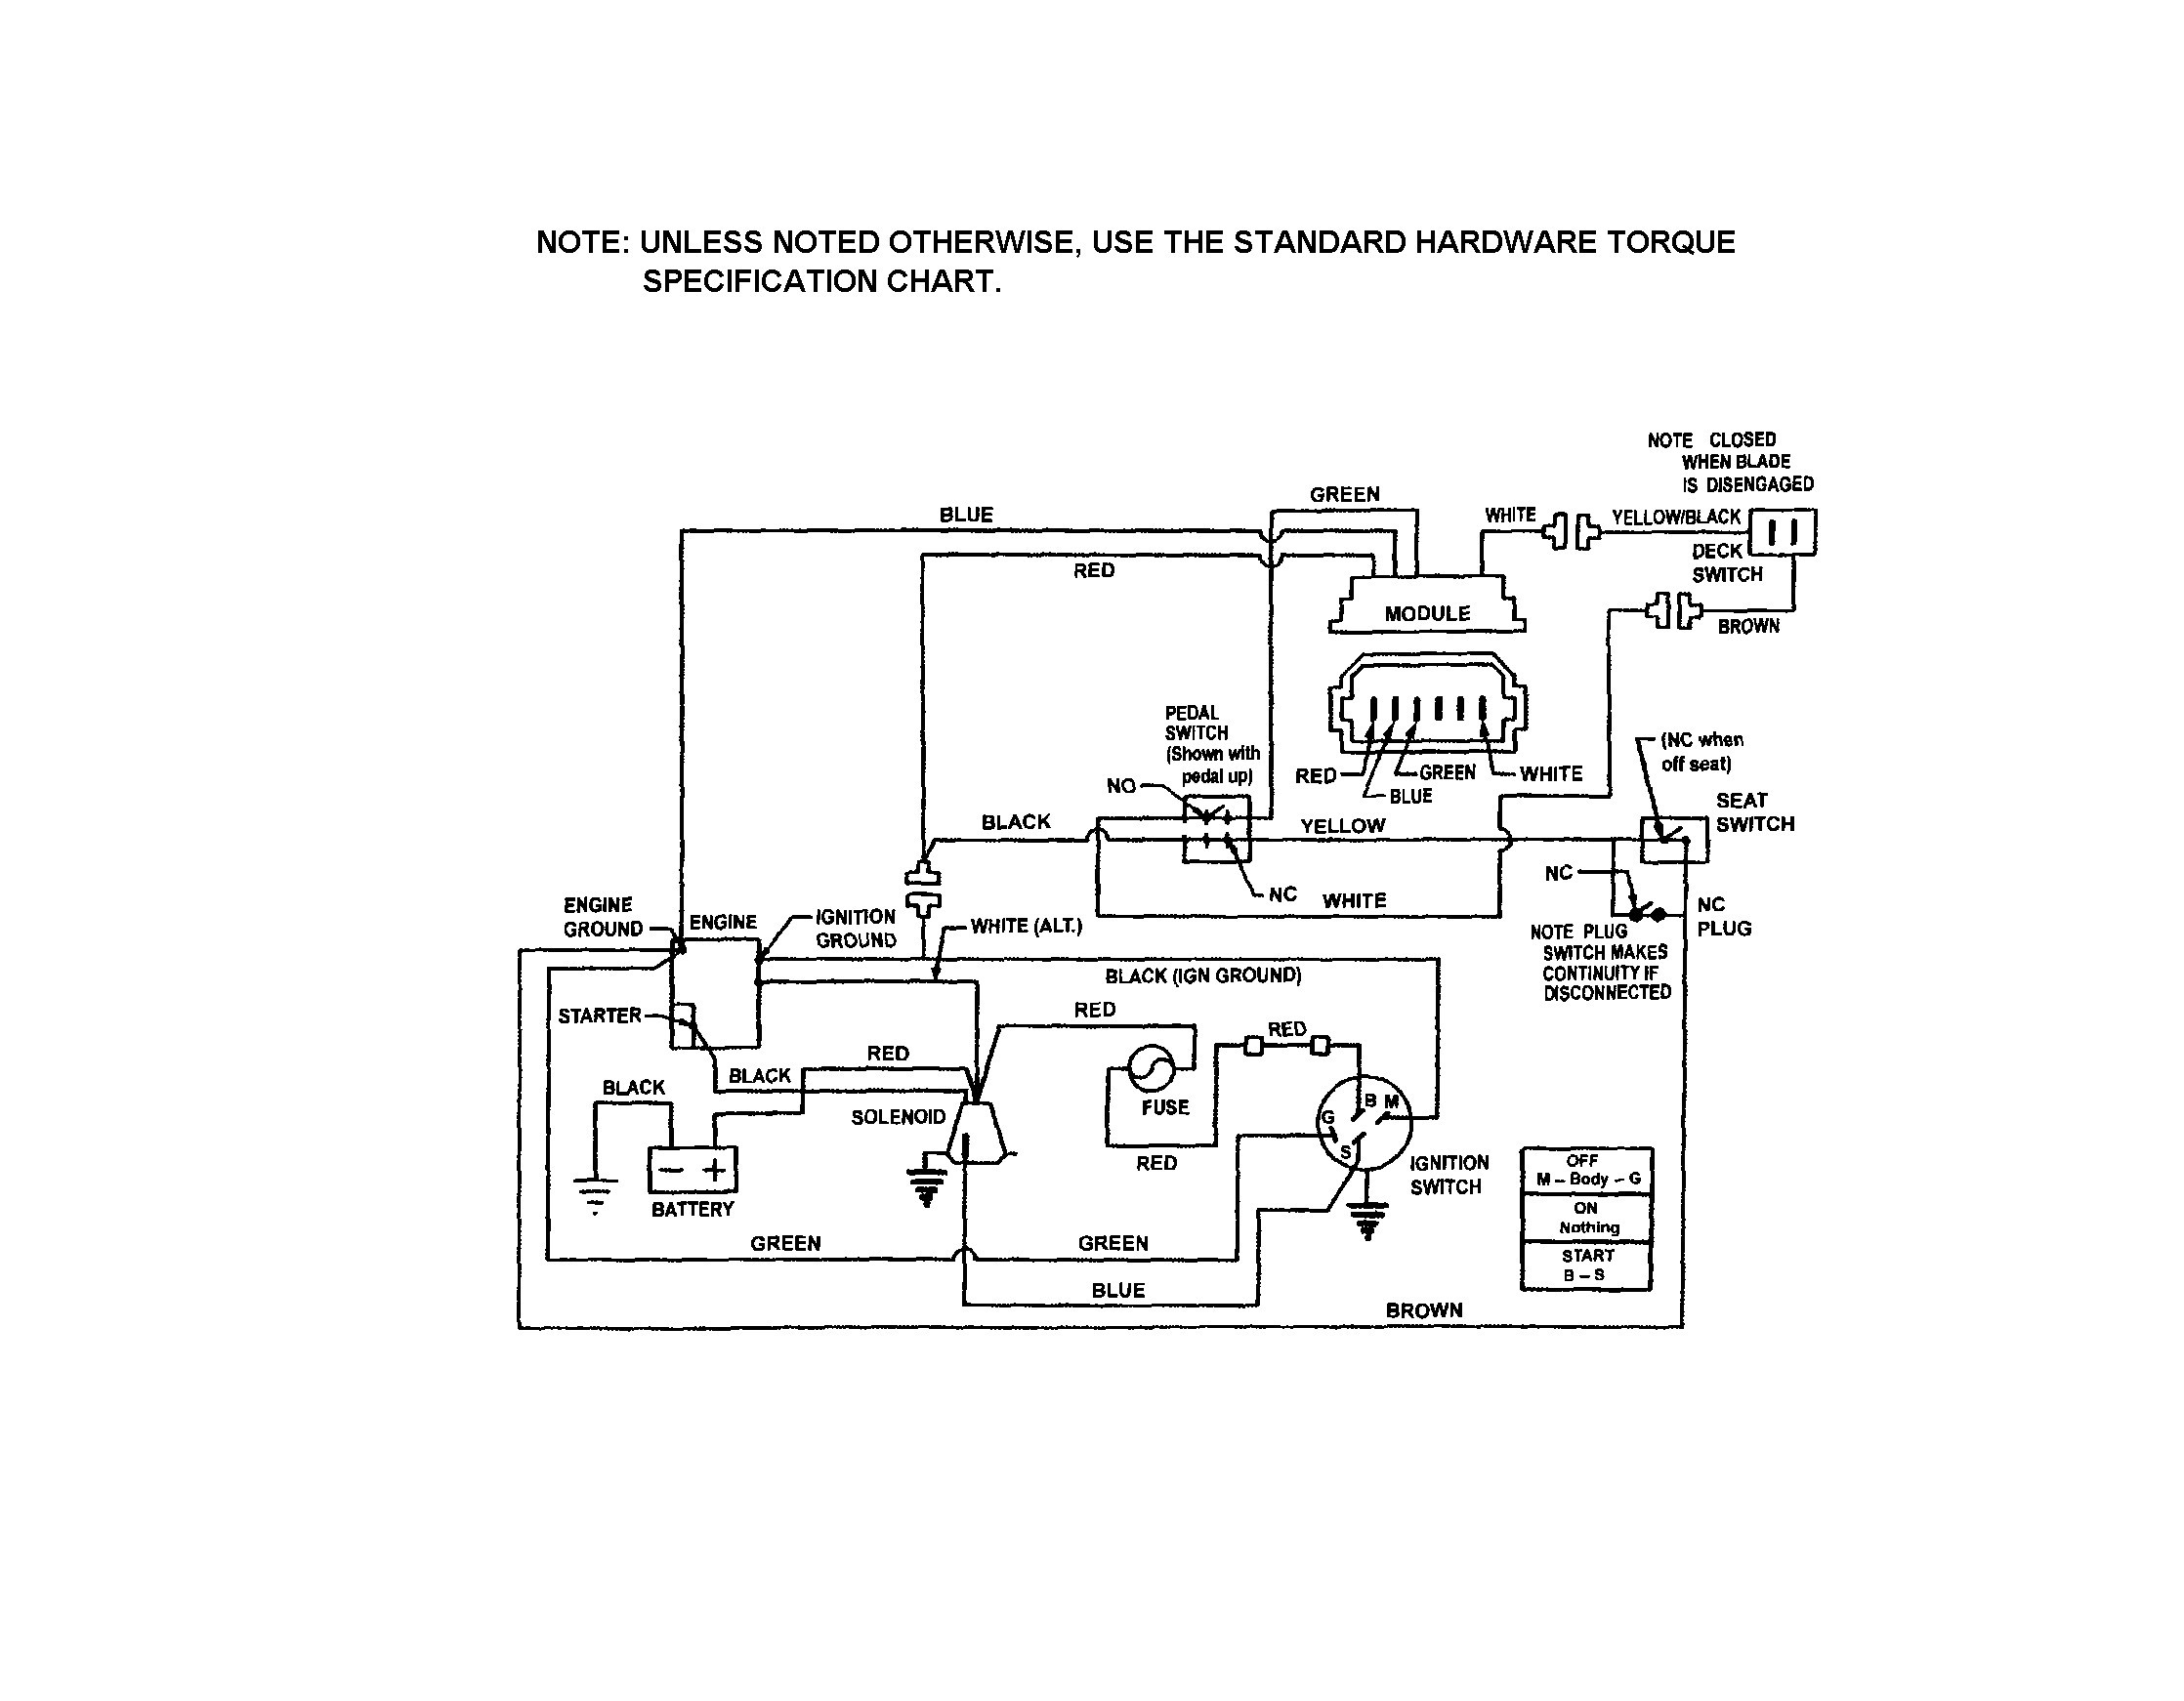 Wiring Diagram for Craftsman Riding Lawn Mower Luxury Lovely Briggs and Stratton Diagram Electrical and Wiring